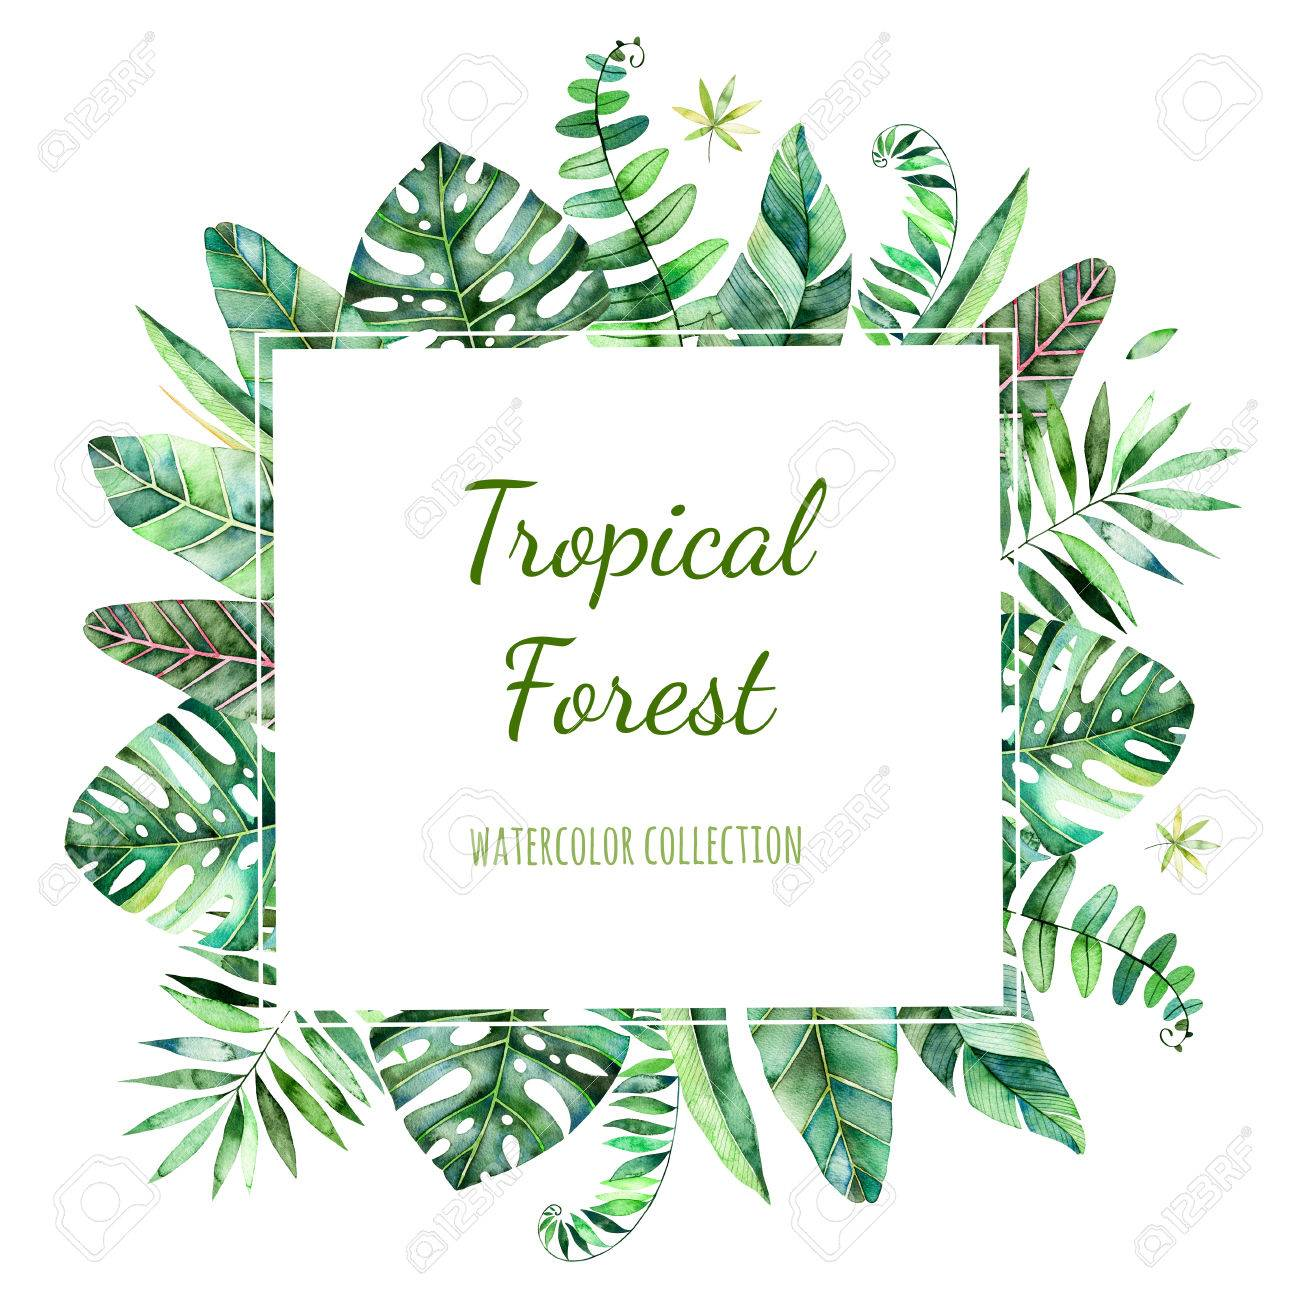 Colorful Floral Frame With Colorful Tropical Leaves Tropical Stock Photo Picture And Royalty Free Image Image 75998993 Tropical rainforests are found in a tropical belt around the equator where annual temperature and precipitation are high. colorful floral frame with colorful tropical leaves tropical